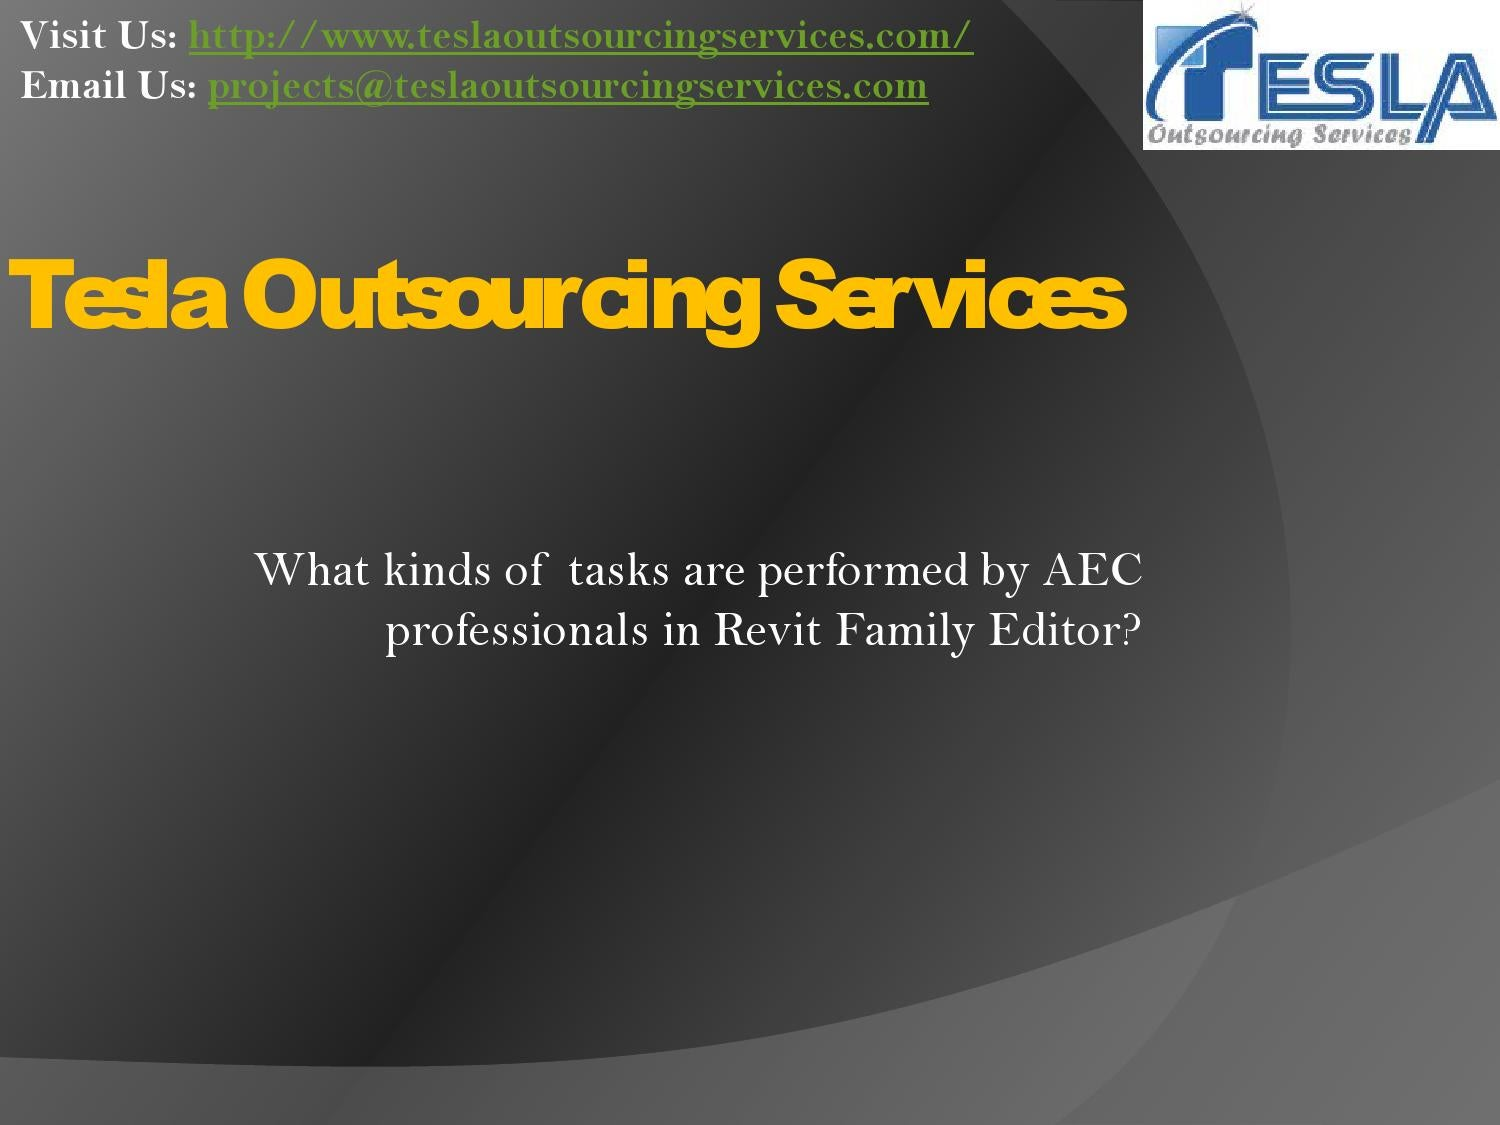 What kinds of tasks are performed by AEC professionals in